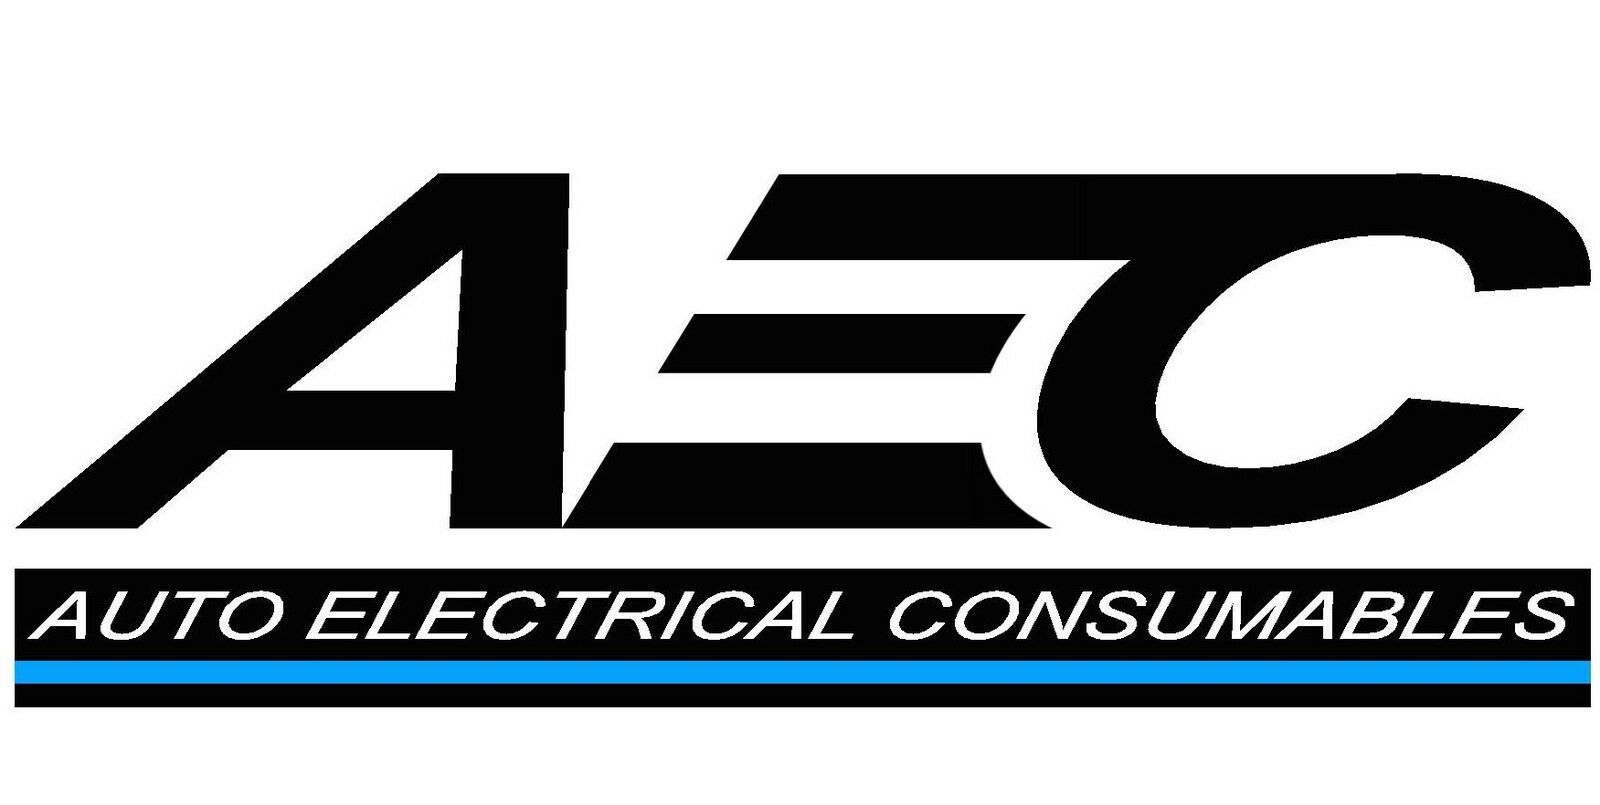 Auto Electrical Consumables